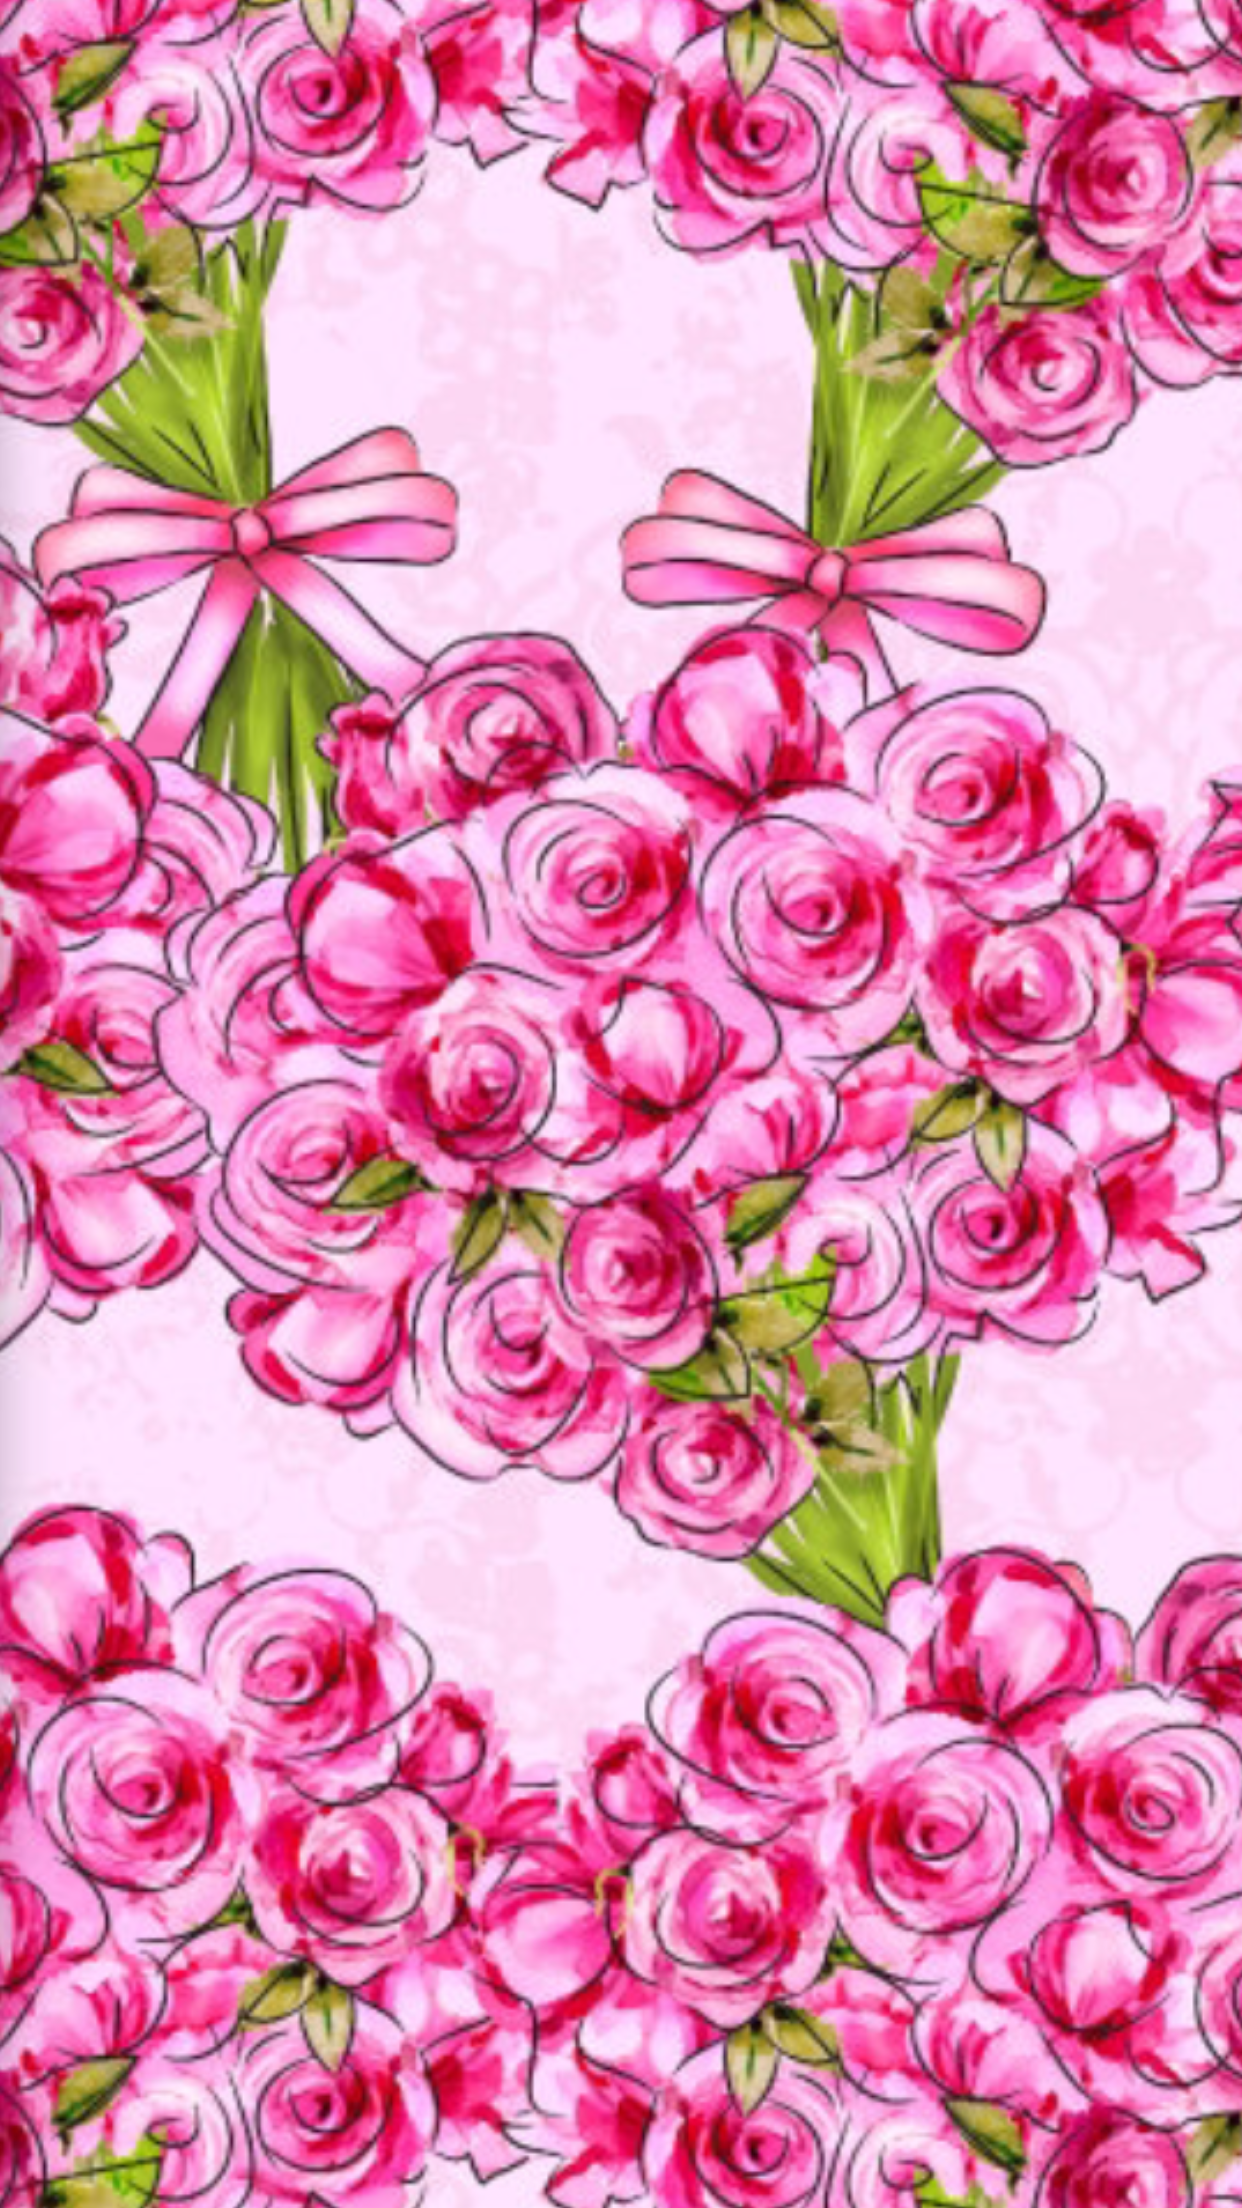 Girly Droid Wallpapers image by Kathy🐰 Beckwith🌺 Flower